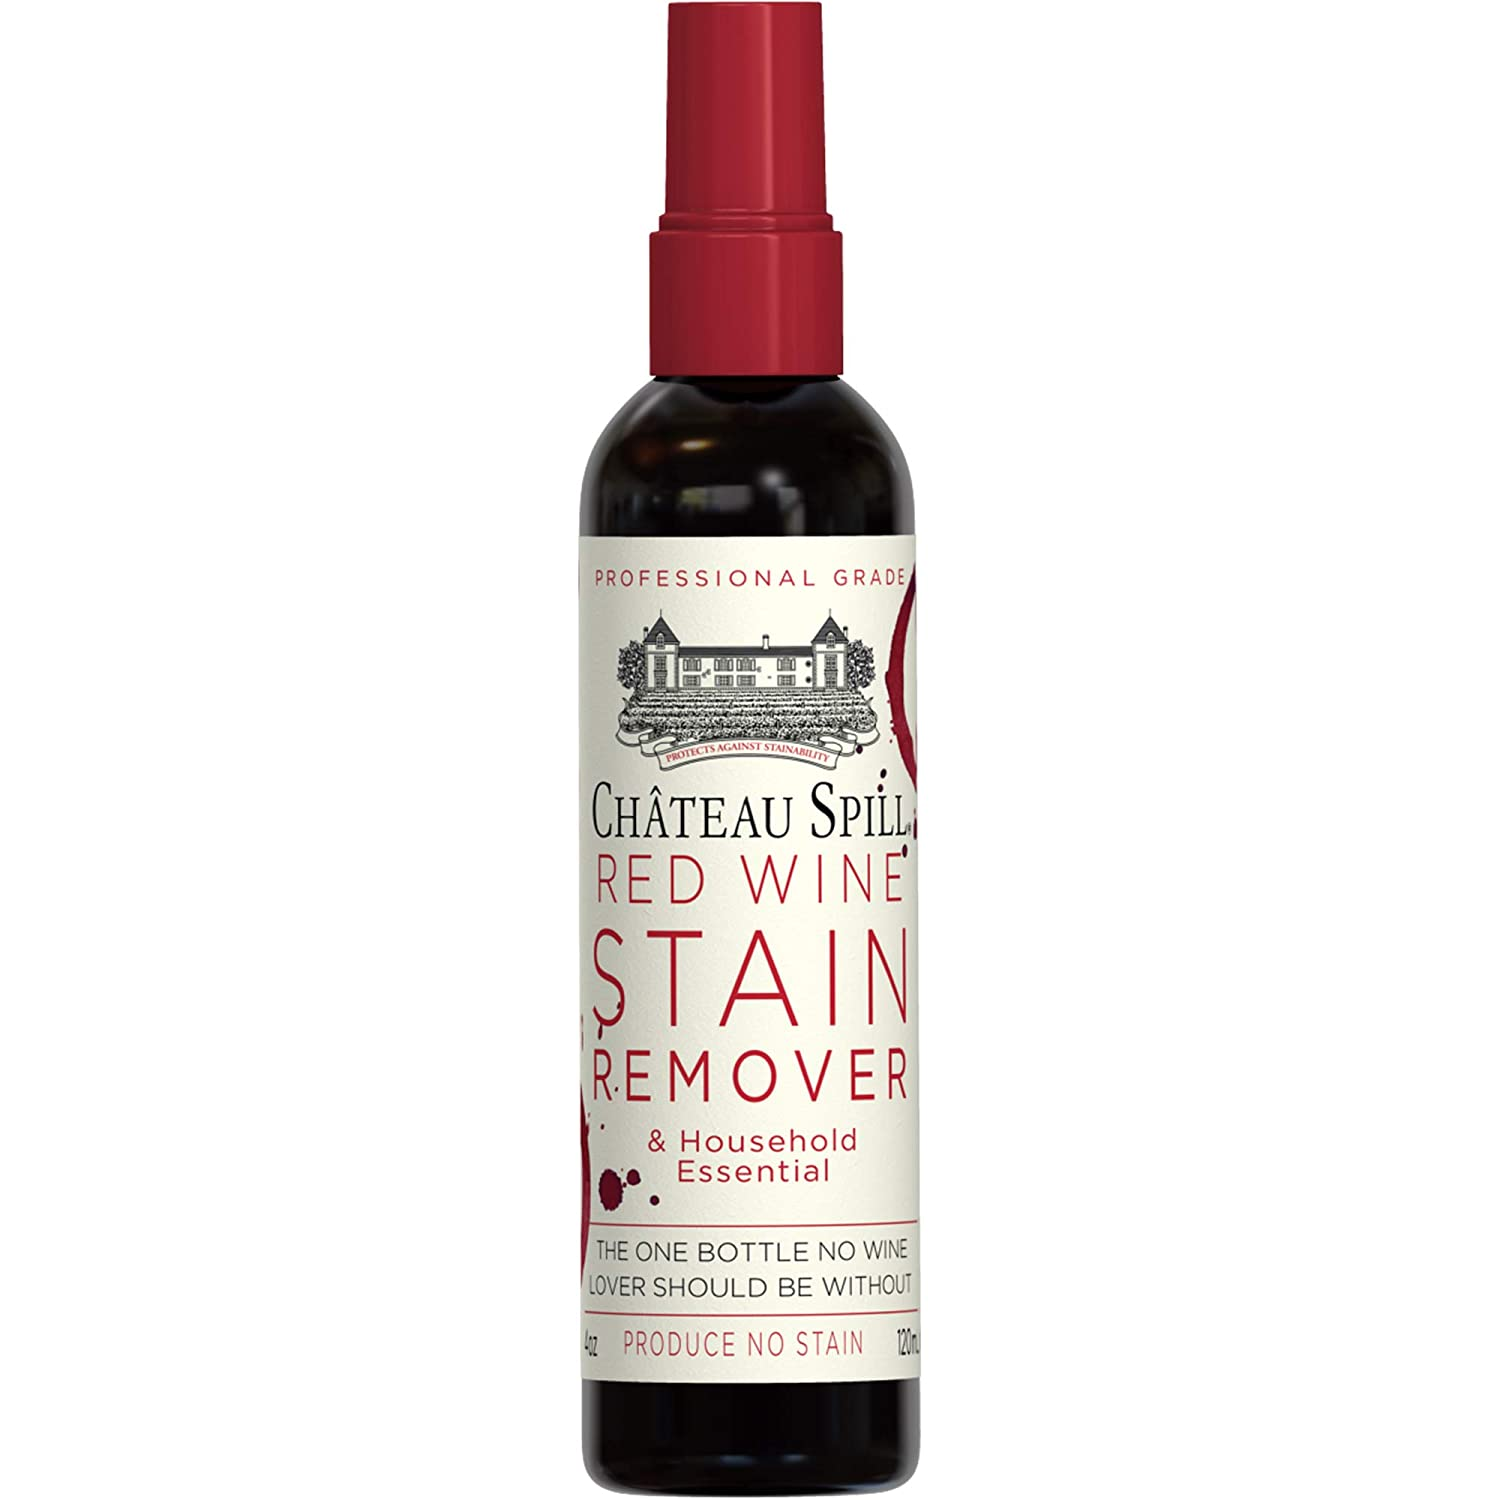 Incredible Chateau Spill Red Wine Remover 4 Oz 120 Ml Spray Bottle Wine Stain Remover For Clothes Fabric Stain Remover Carpet Stain Remover Gets The Inzonedesignstudio Interior Chair Design Inzonedesignstudiocom